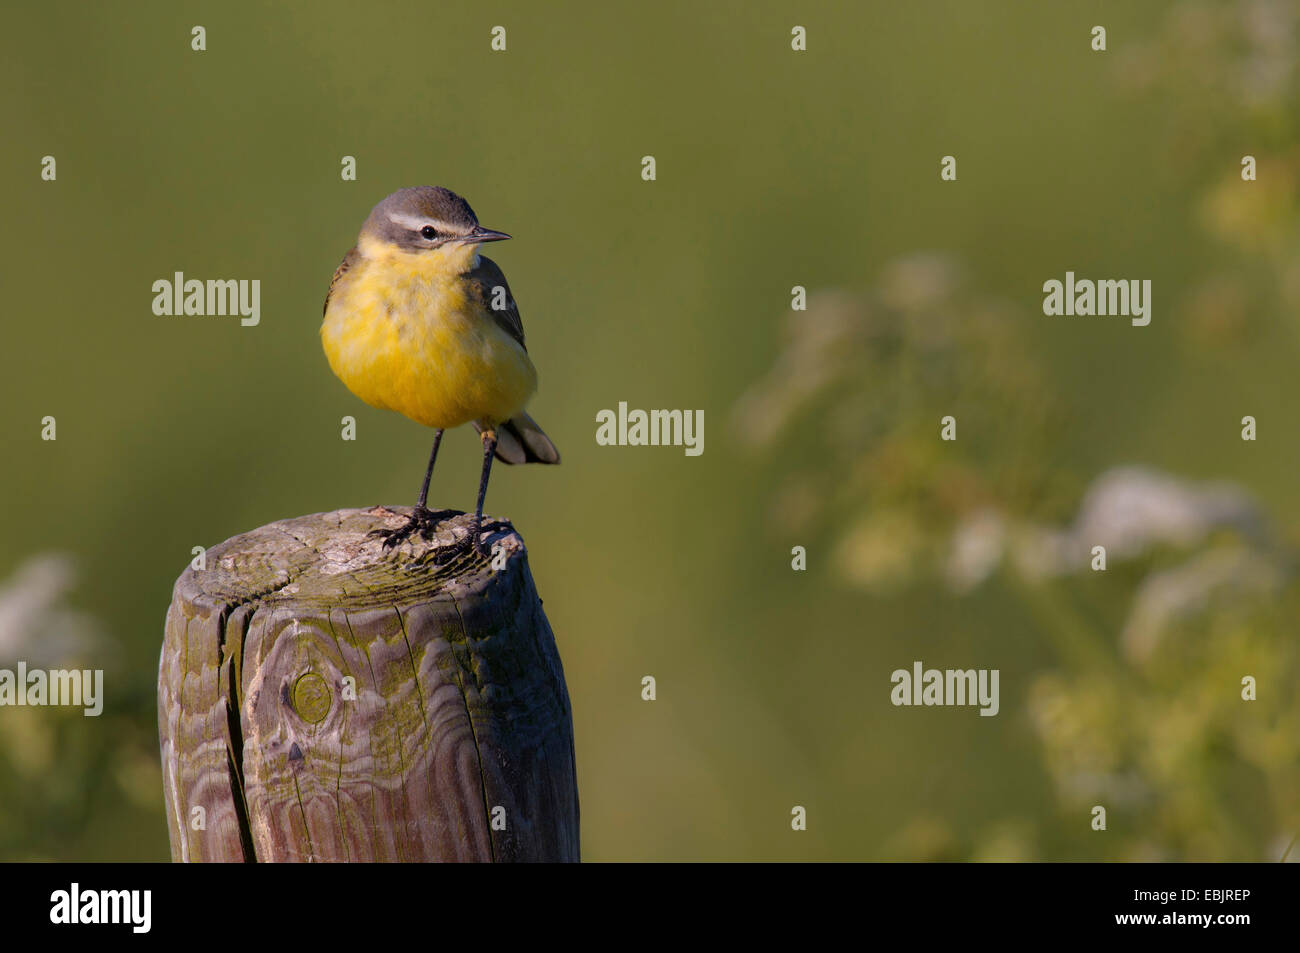 yellow wagtail (Motacilla flava), sitting on a wooden post, Netherlands, Texel - Stock Image